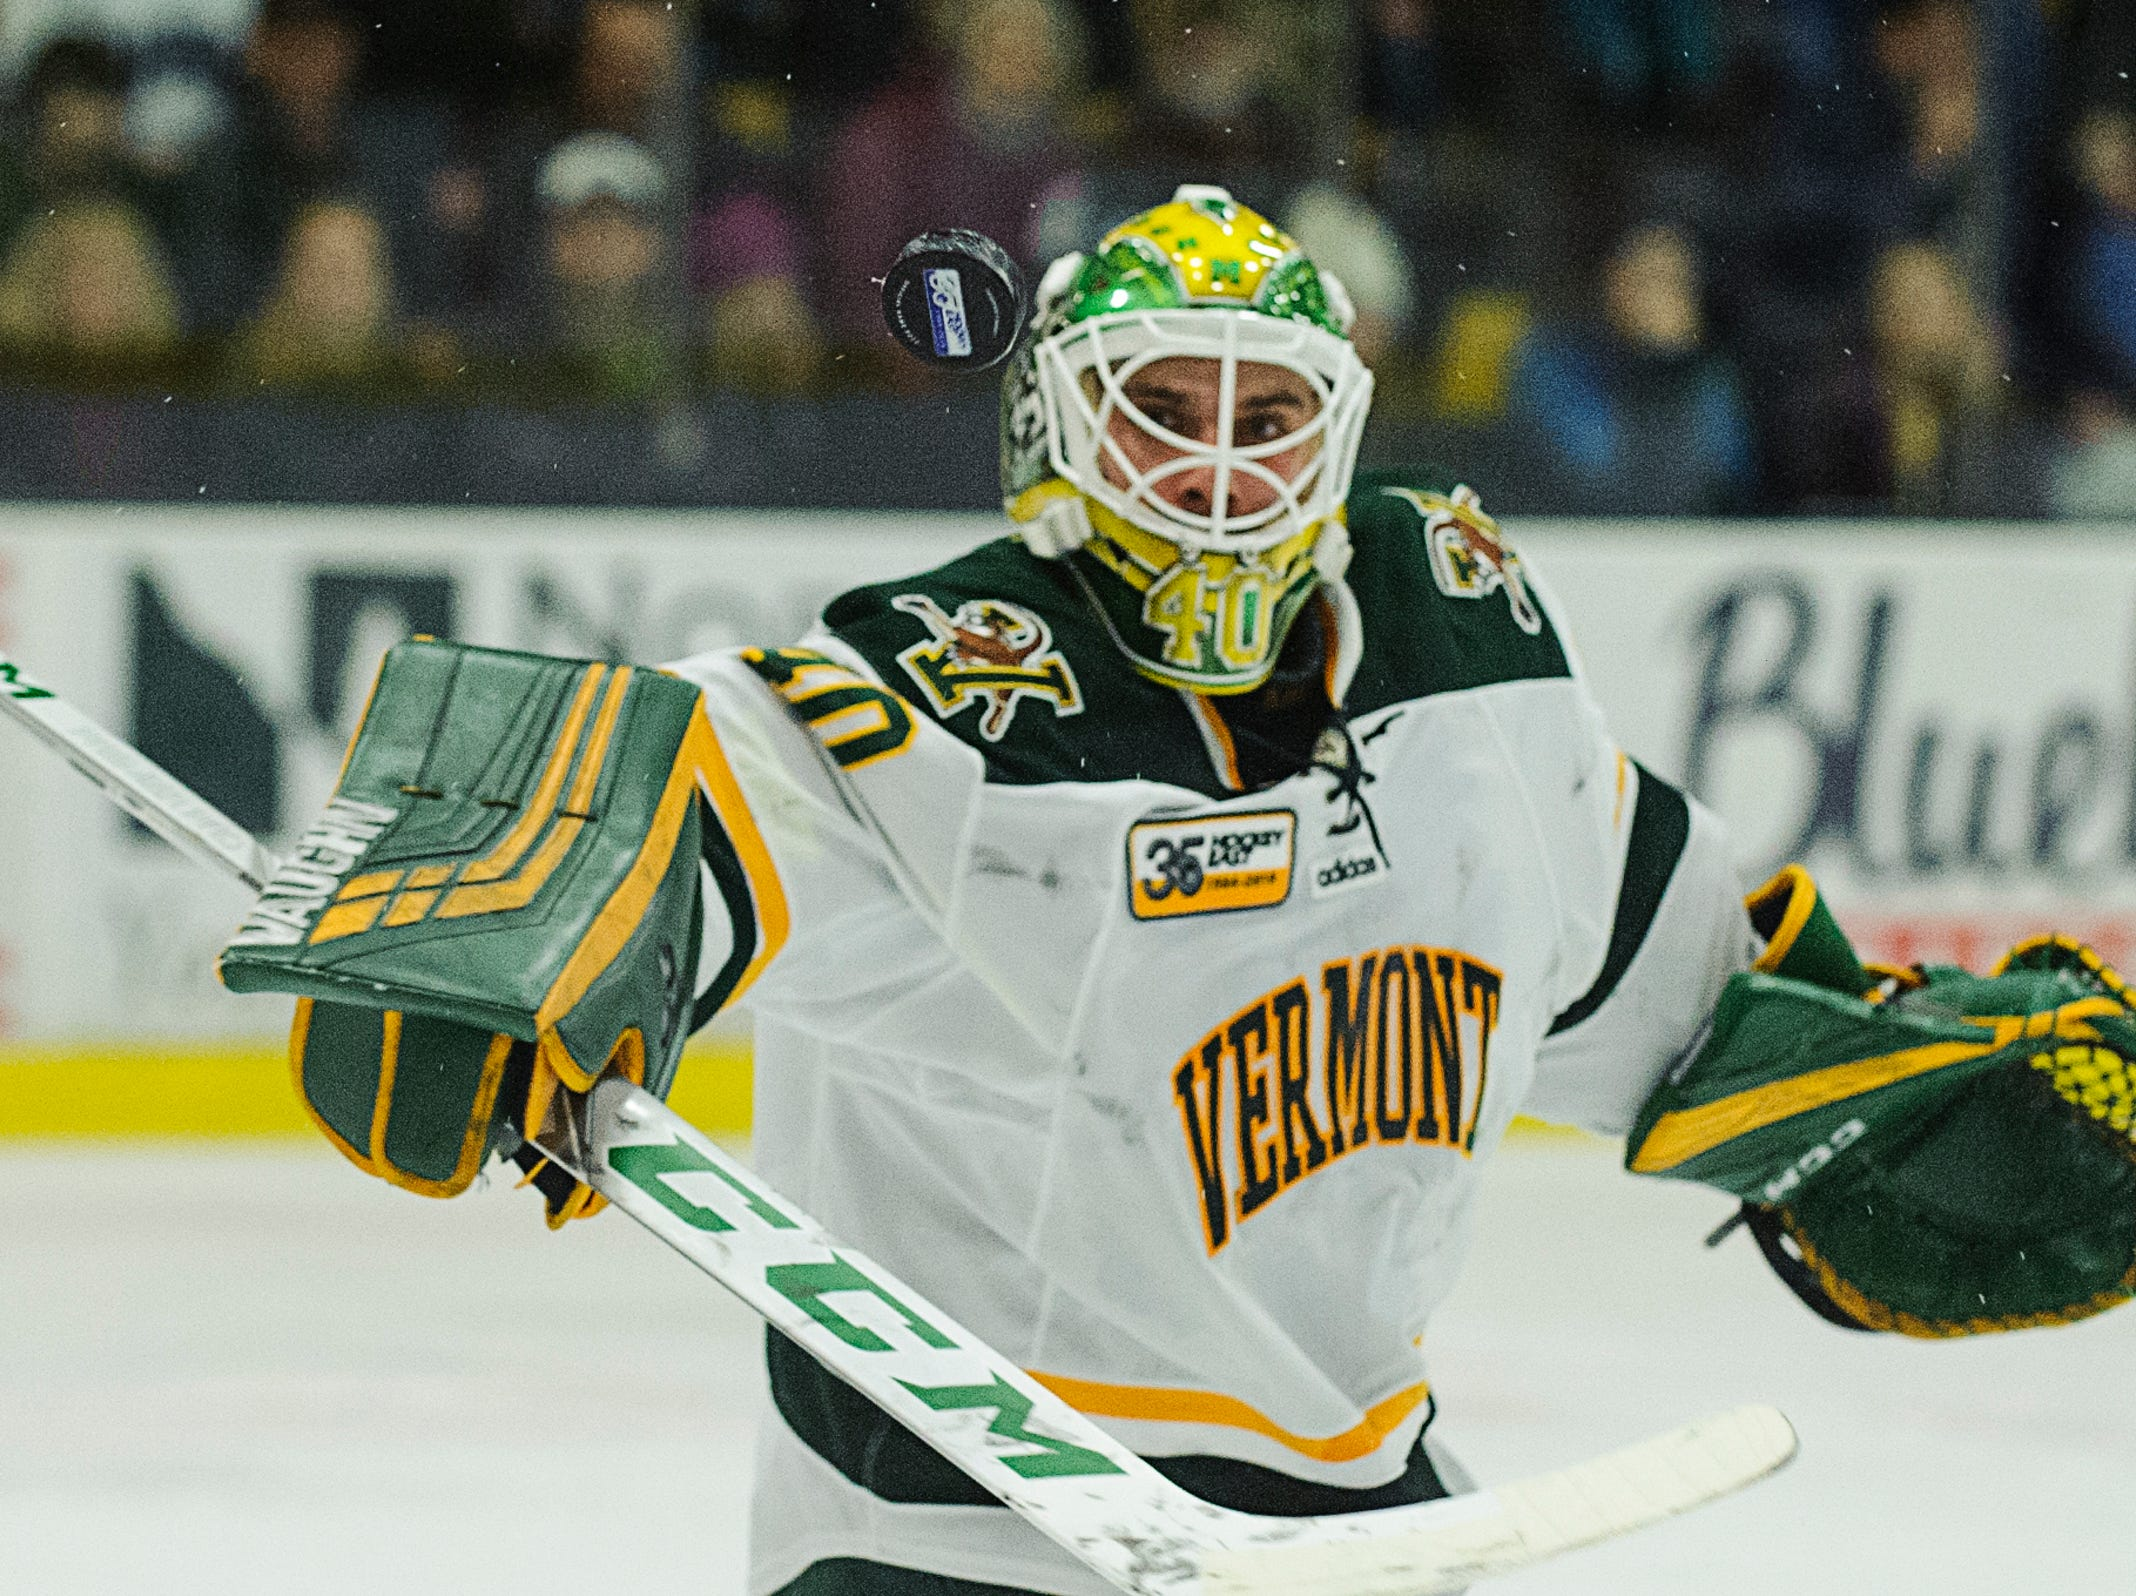 Vermont goalie Stefanos Lekkas (40) makes a save during the men's hockey game between the New Hampshire Wildcats and the Vermont Catamounts at Gutterson Field House on Friday night February 8, 2019 in Burlington, Vermont.